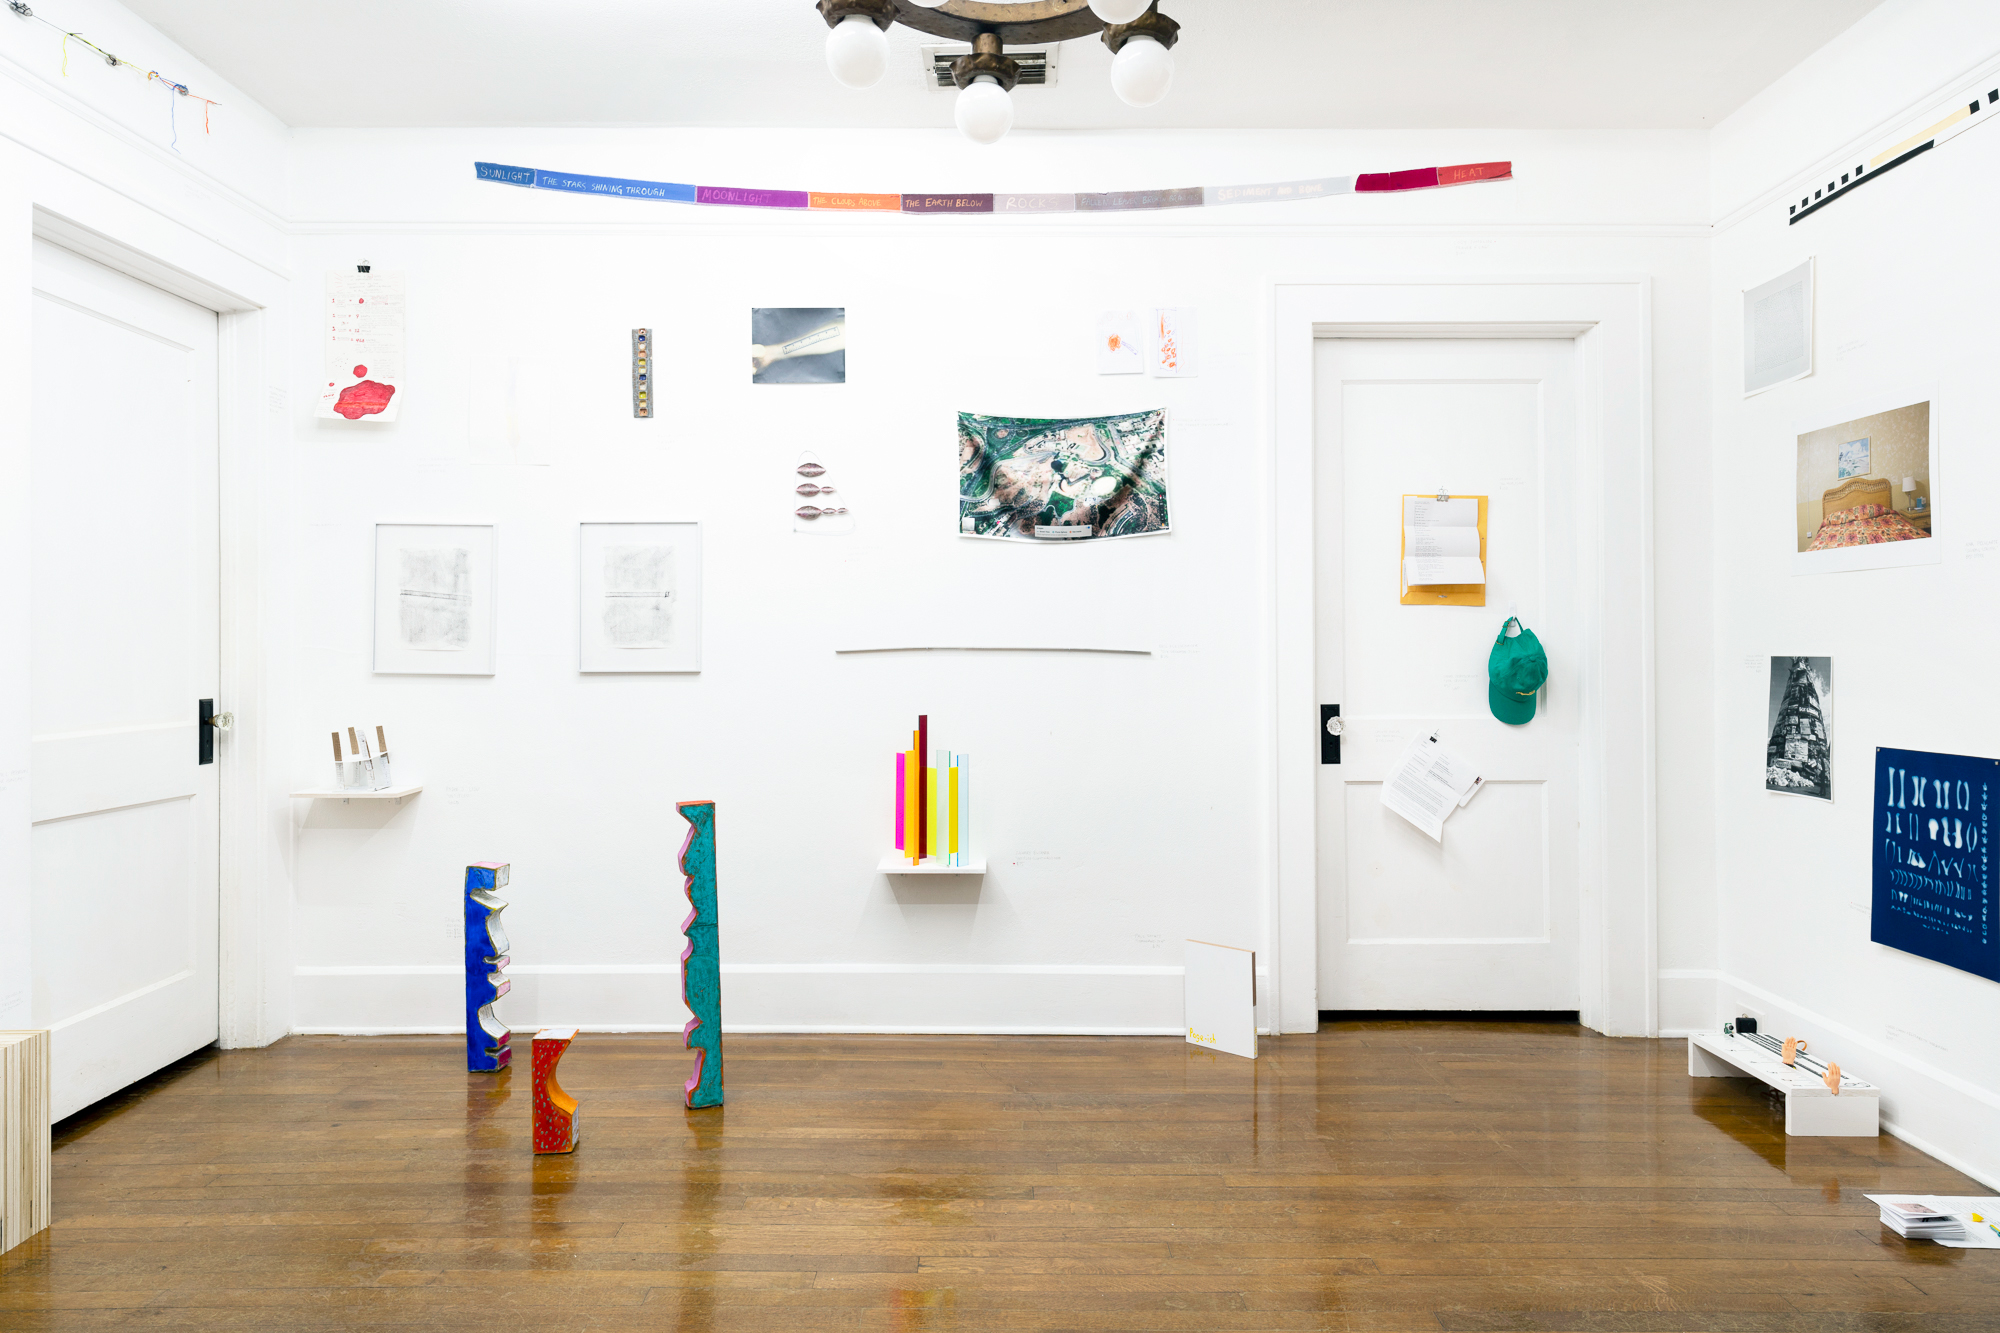 Vita criticata, 2019 Embroidered patch on cotton twill ball cap Installation view, Rulers, Coco Hunday, Jun–Aug 2019 (on the gallerist's bedroom door) Photo by Pat Blocher